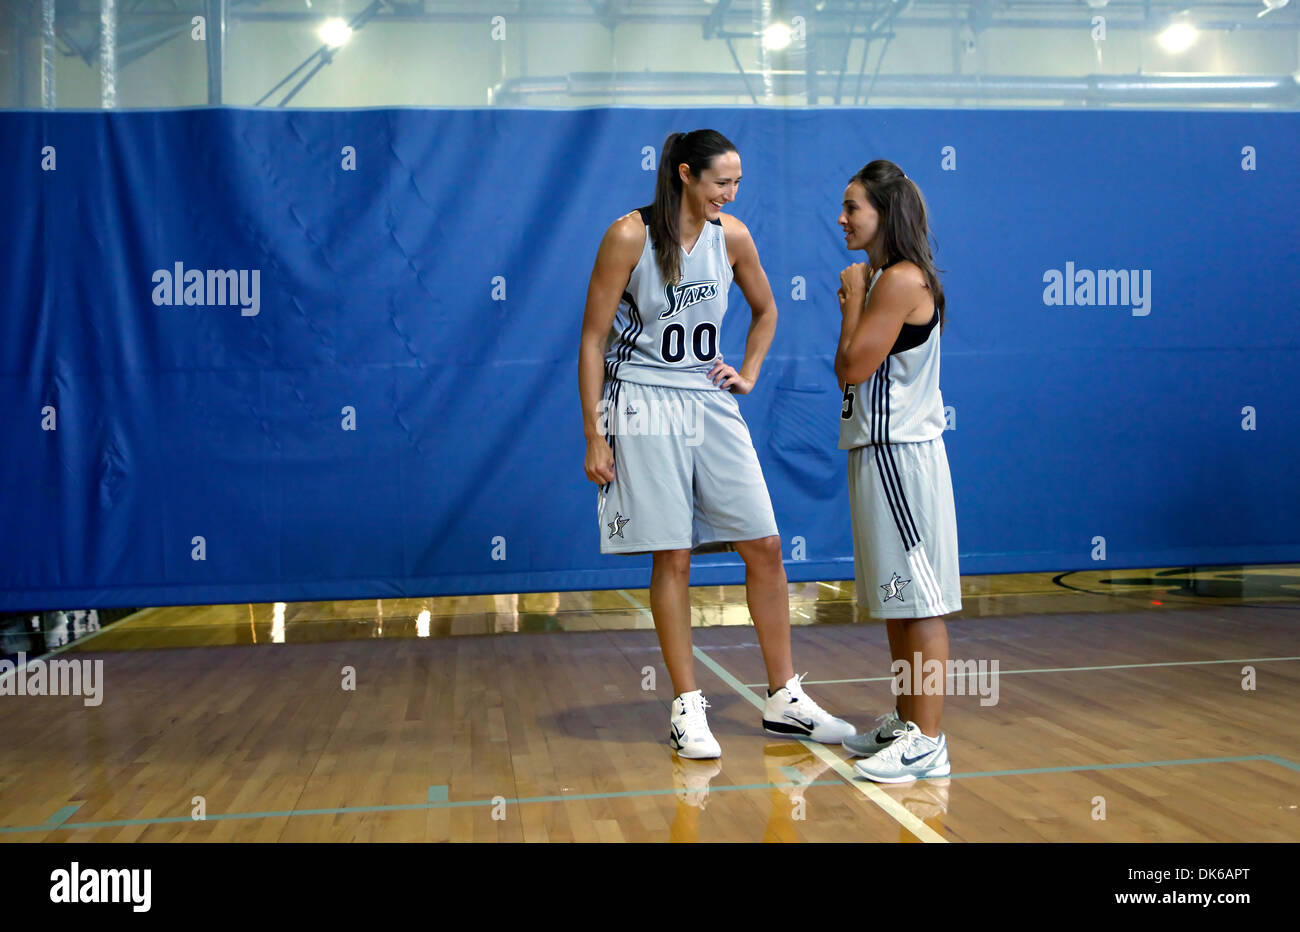 May 19, 2011 - San Antonio, TEXAS, USA - The WNBA's Silver Stars' Ruth Riley, left, and Becky Hammon, talk Wednesday May18, 2011 at their practice facility, the Antioch Baptist Church recreation center, during the team's media day. (Credit Image: © San Antonio Express-News/ZUMAPRESS.com) - Stock Image